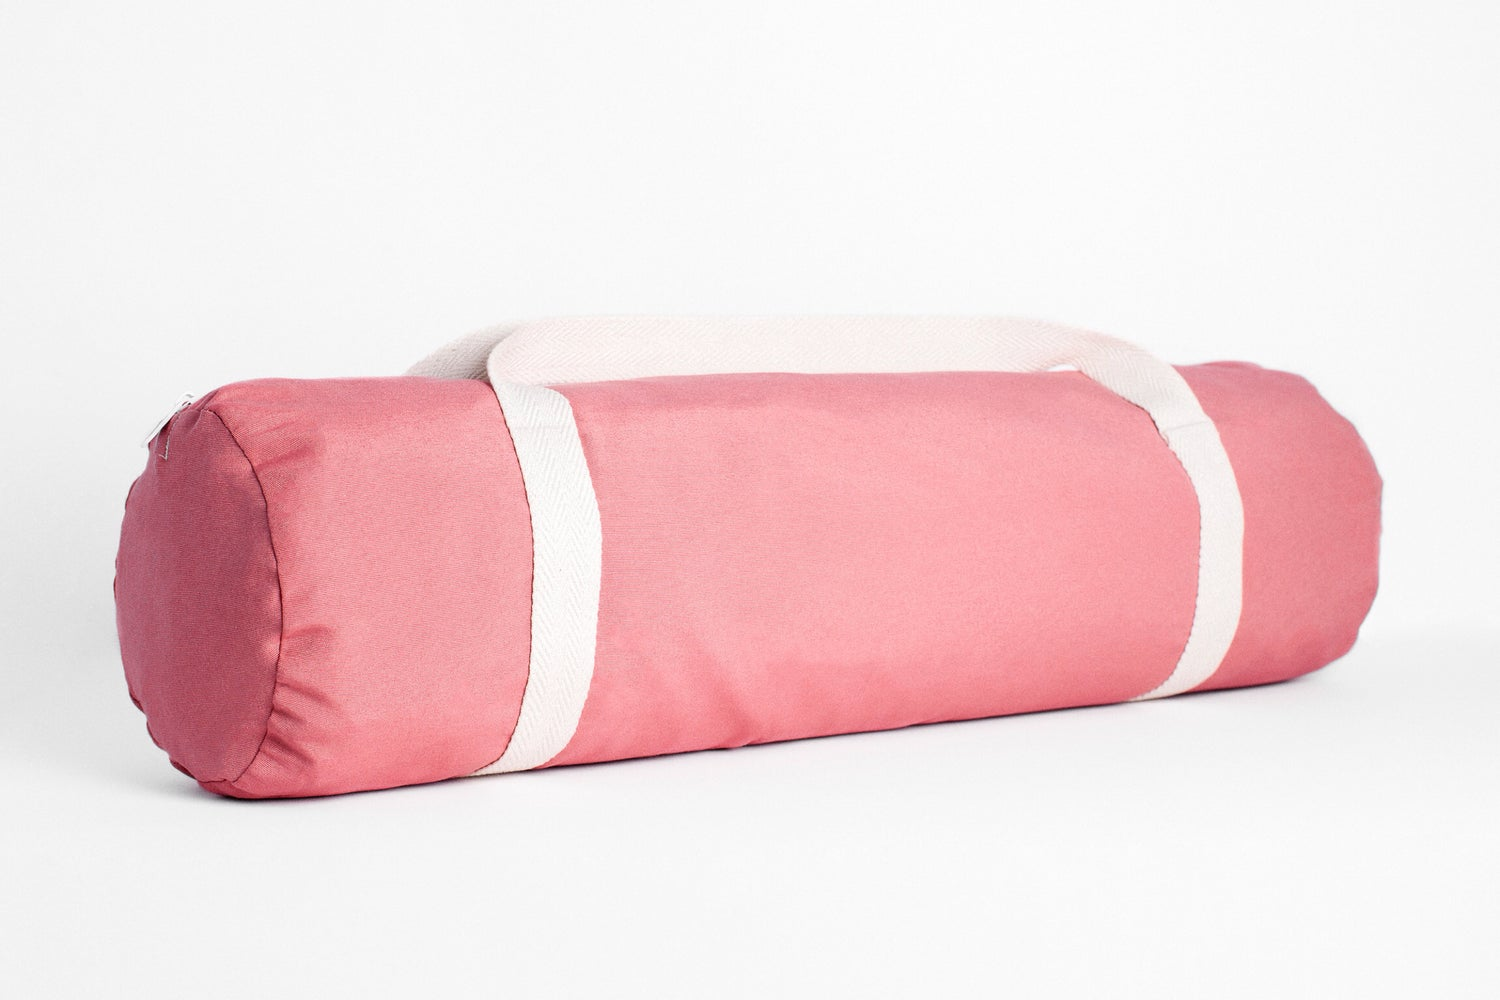 Image of Yoga Bag • Pink